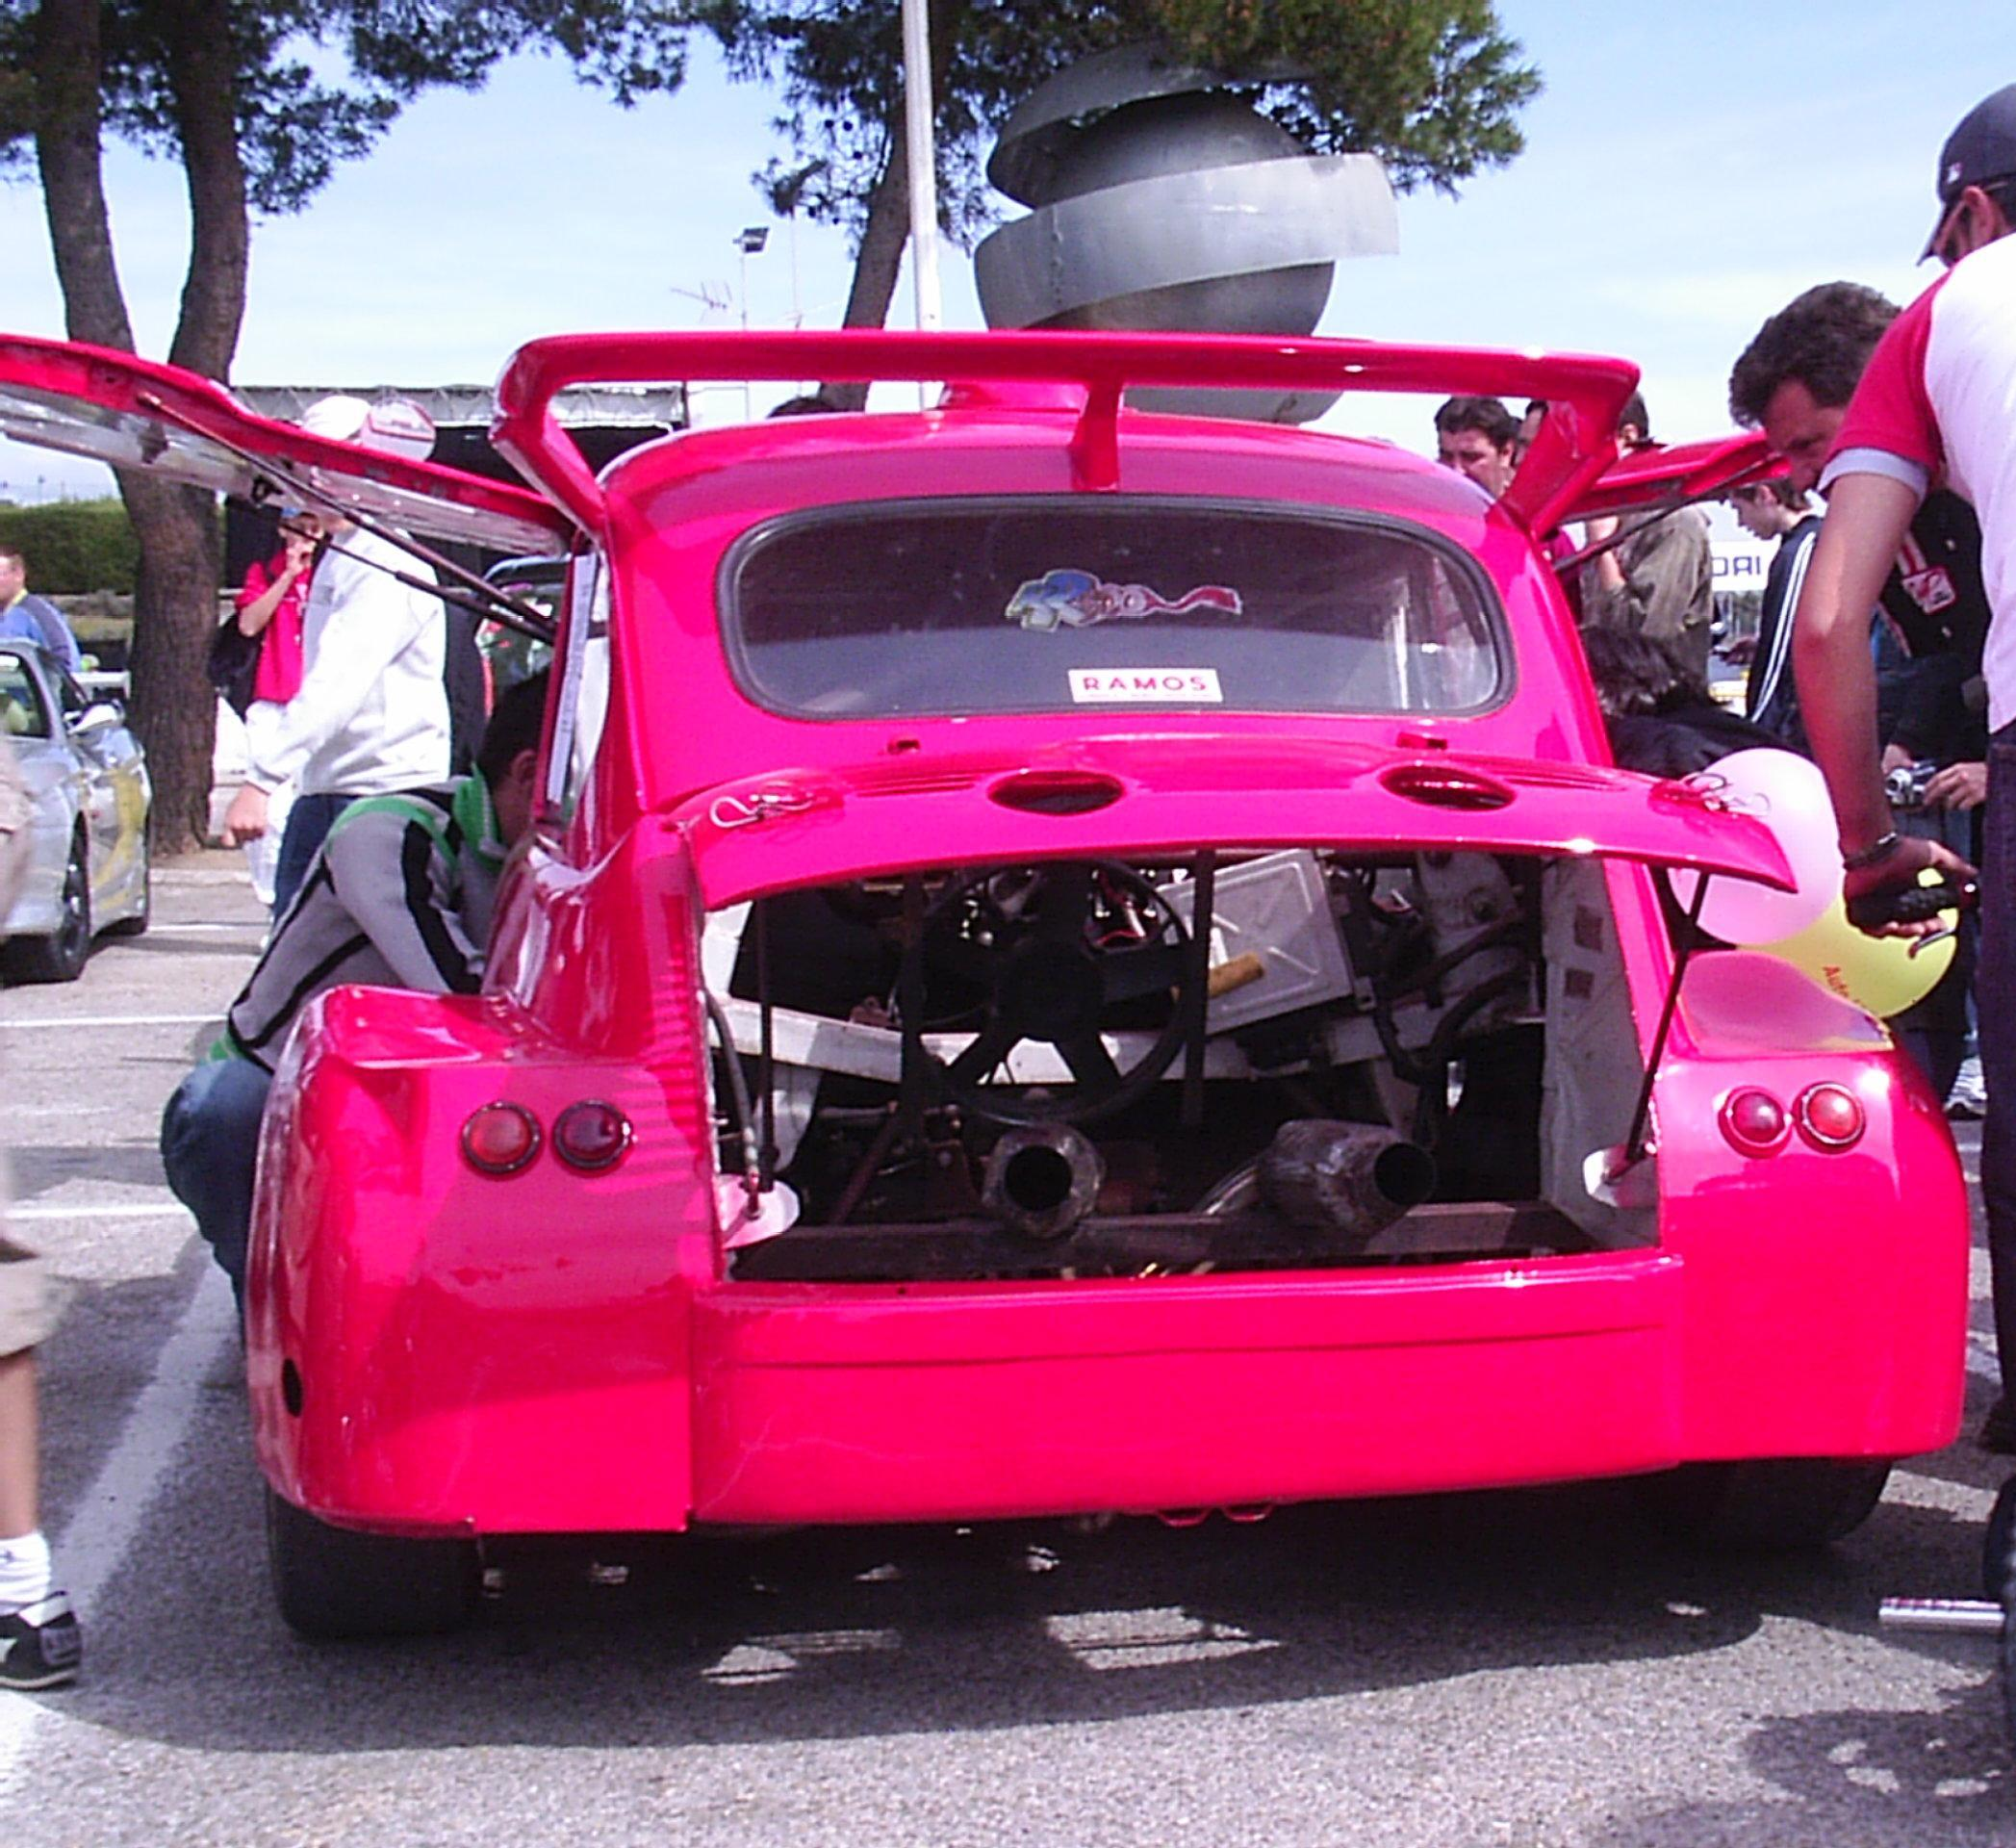 Permalink to Fiat 600 Tuning